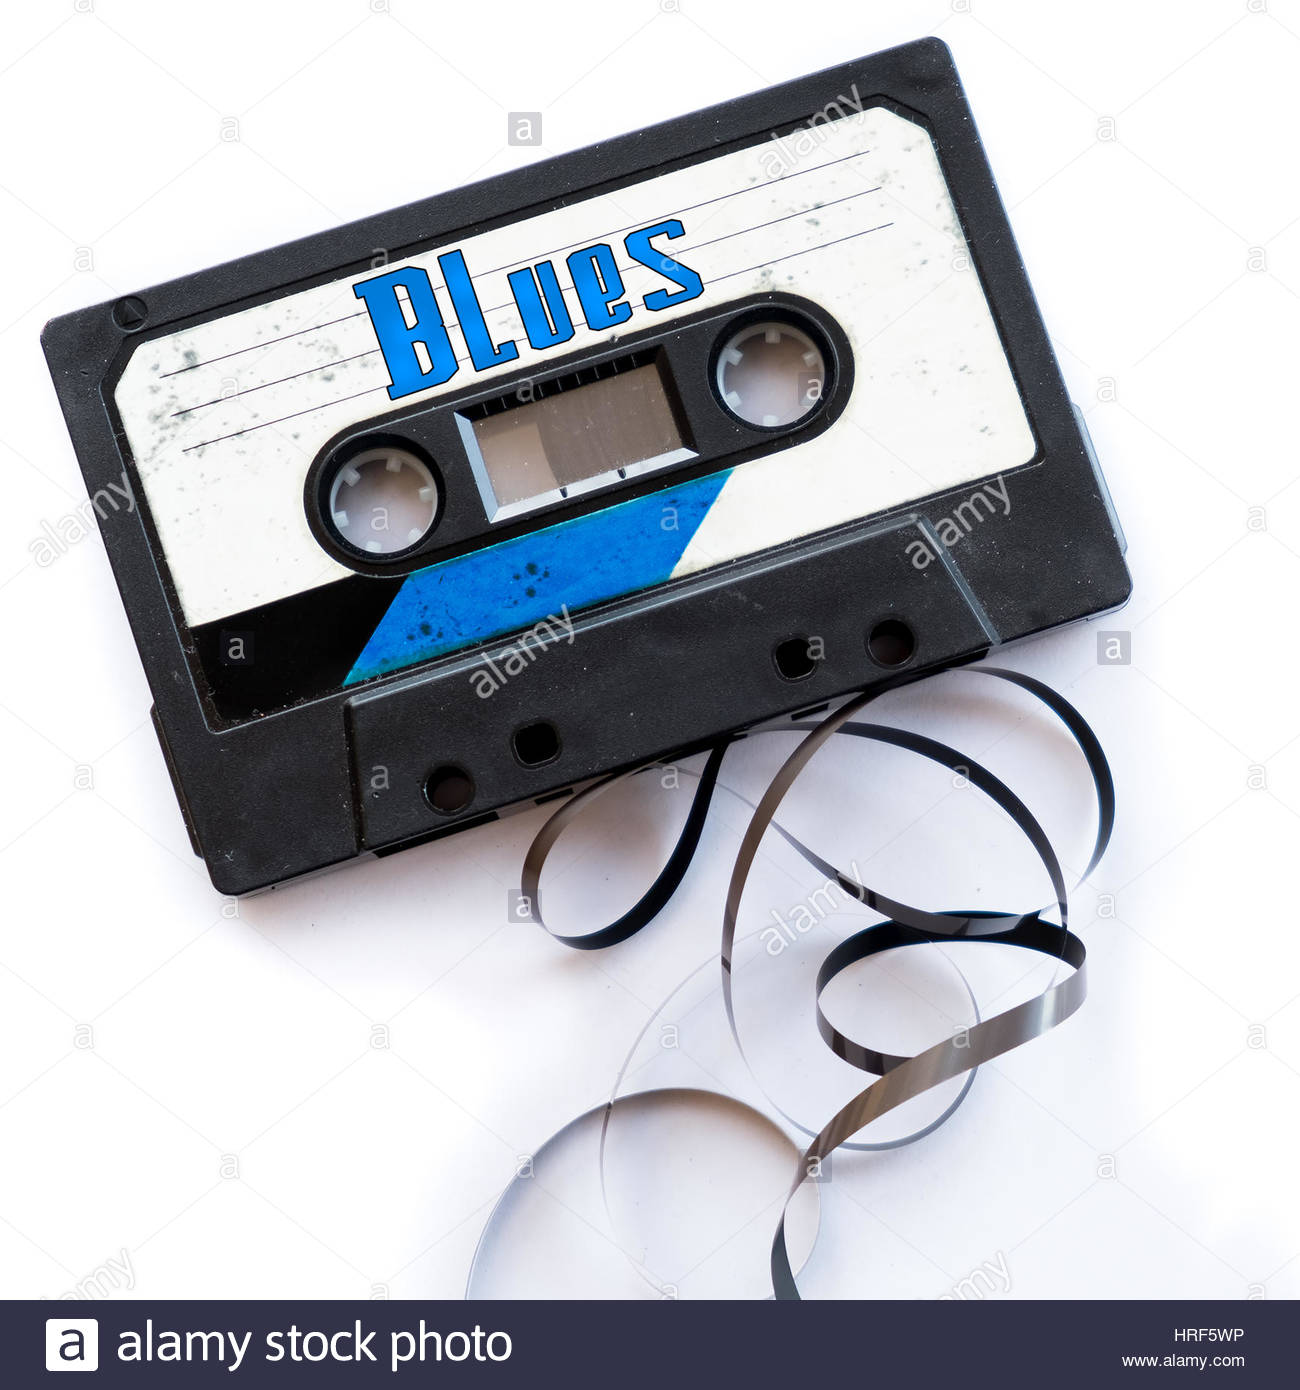 blues audio tape